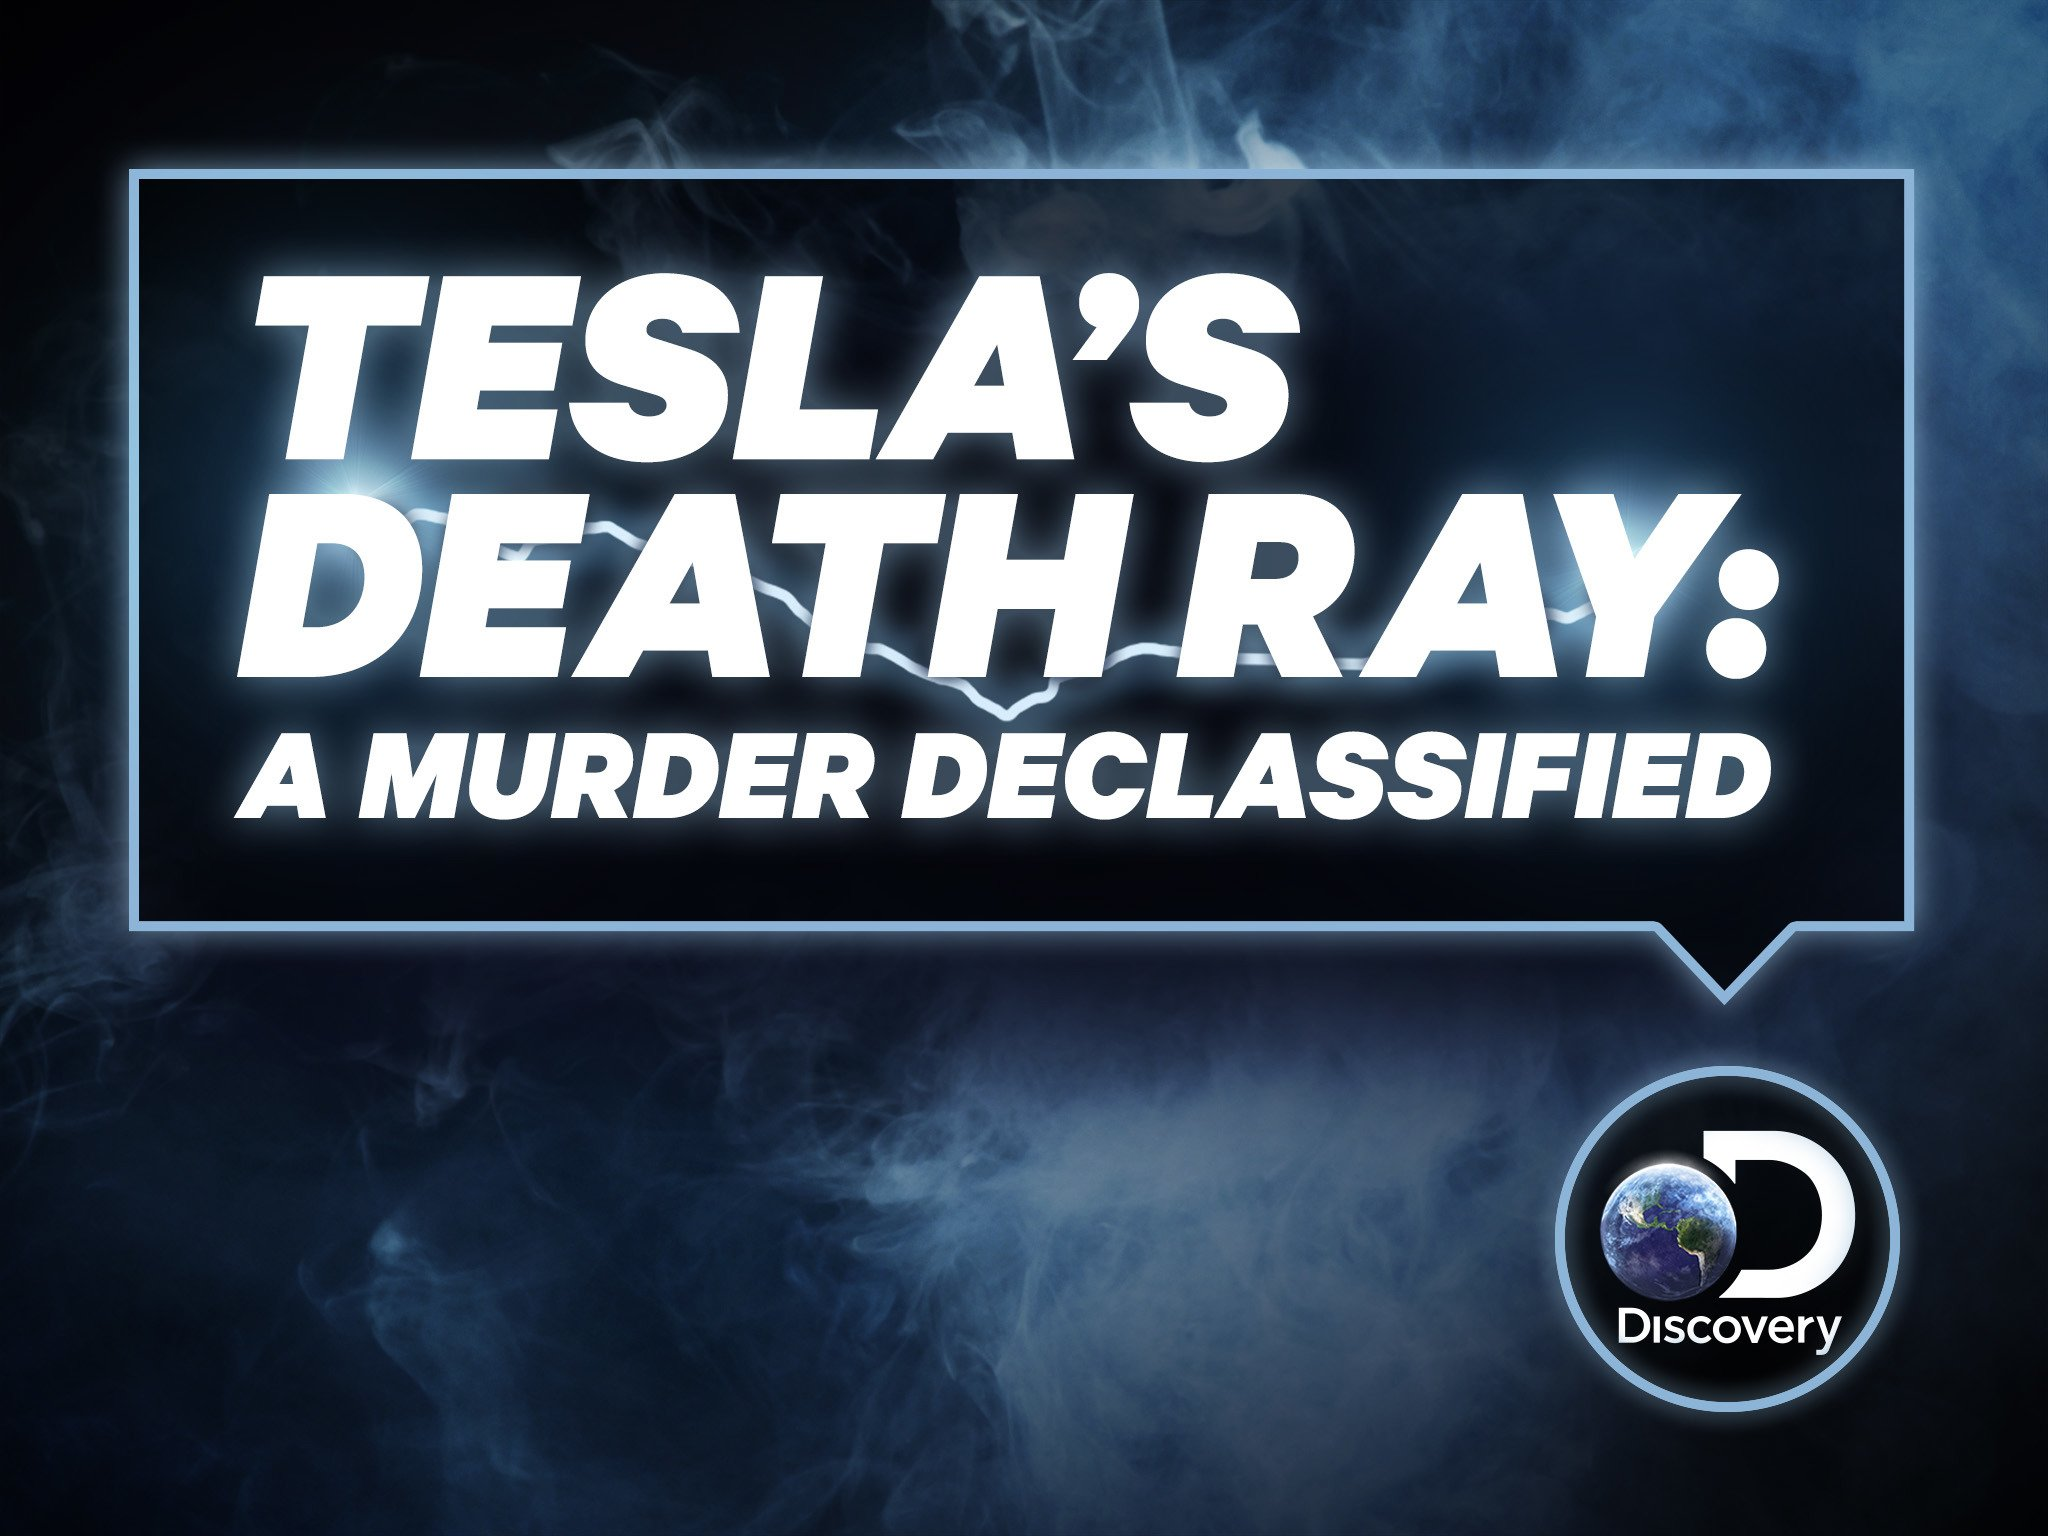 Teslas death ray: a murder declassified episodes